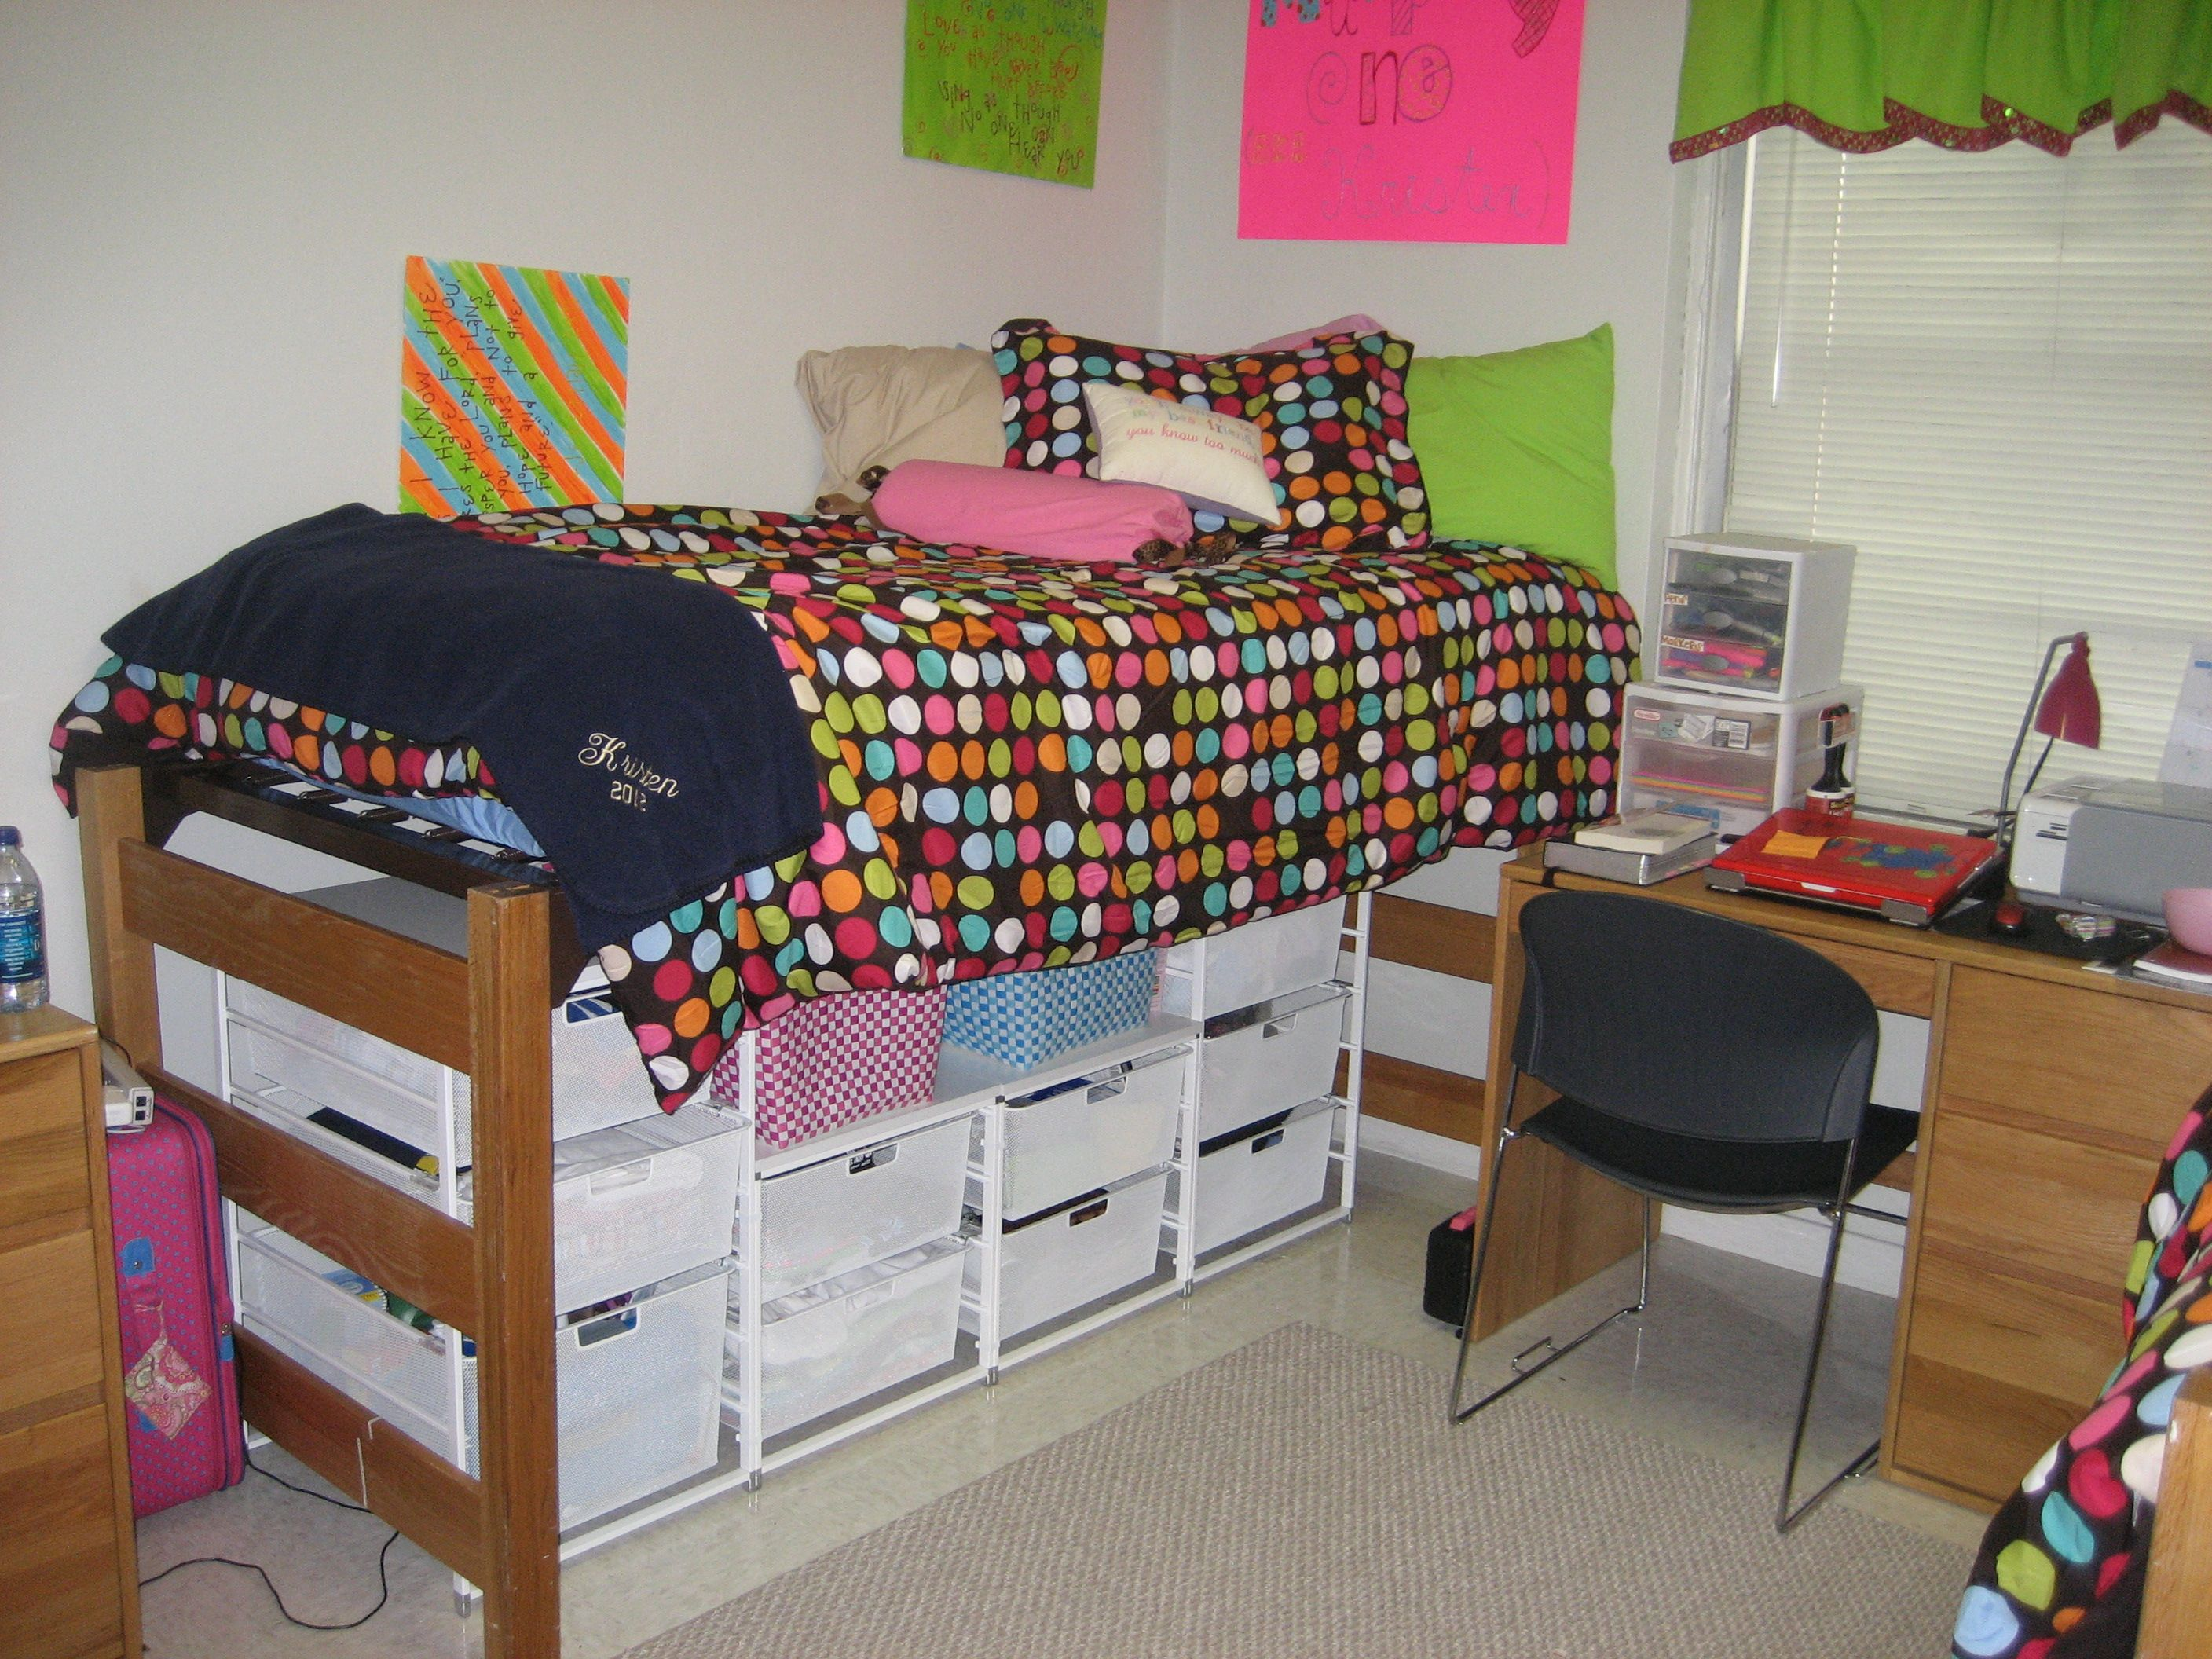 Pin on my favorite dorm ideas - Dorm underbed storage ideas ...